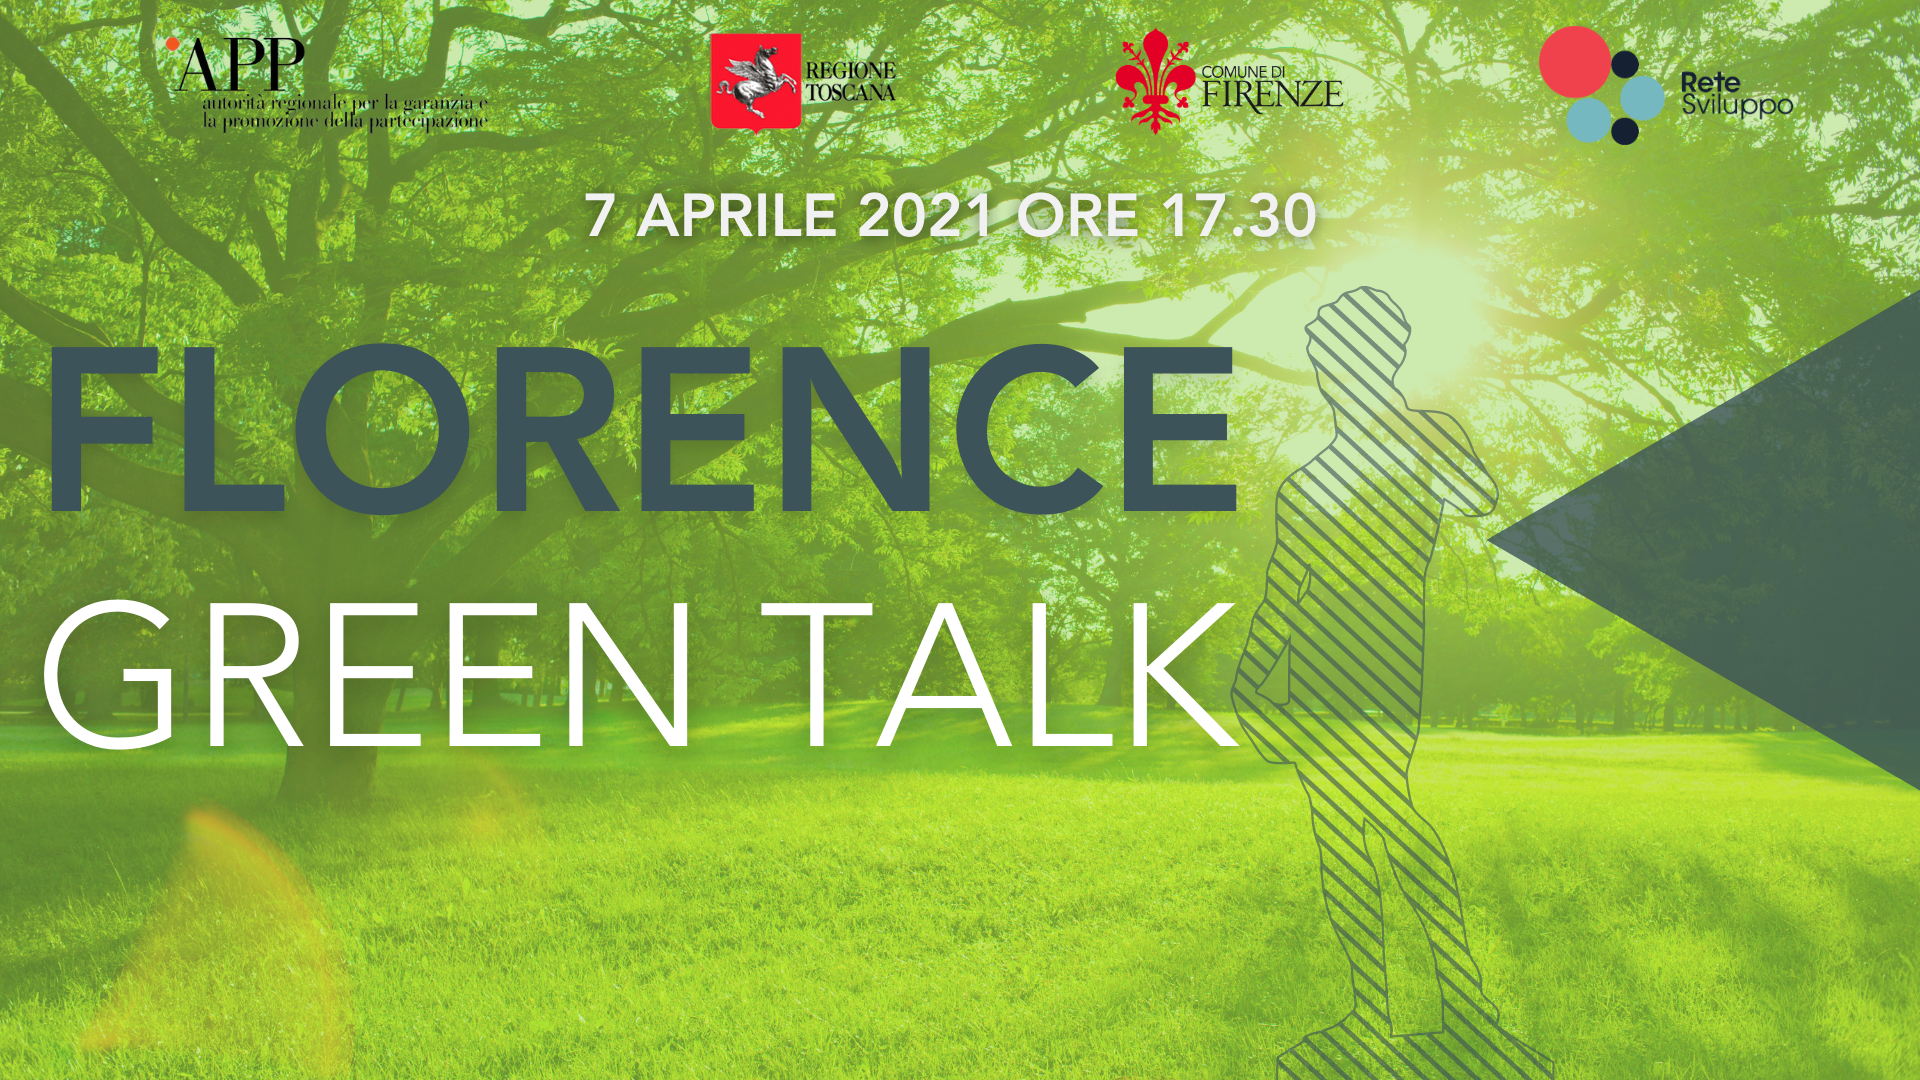 Florence Green Talk